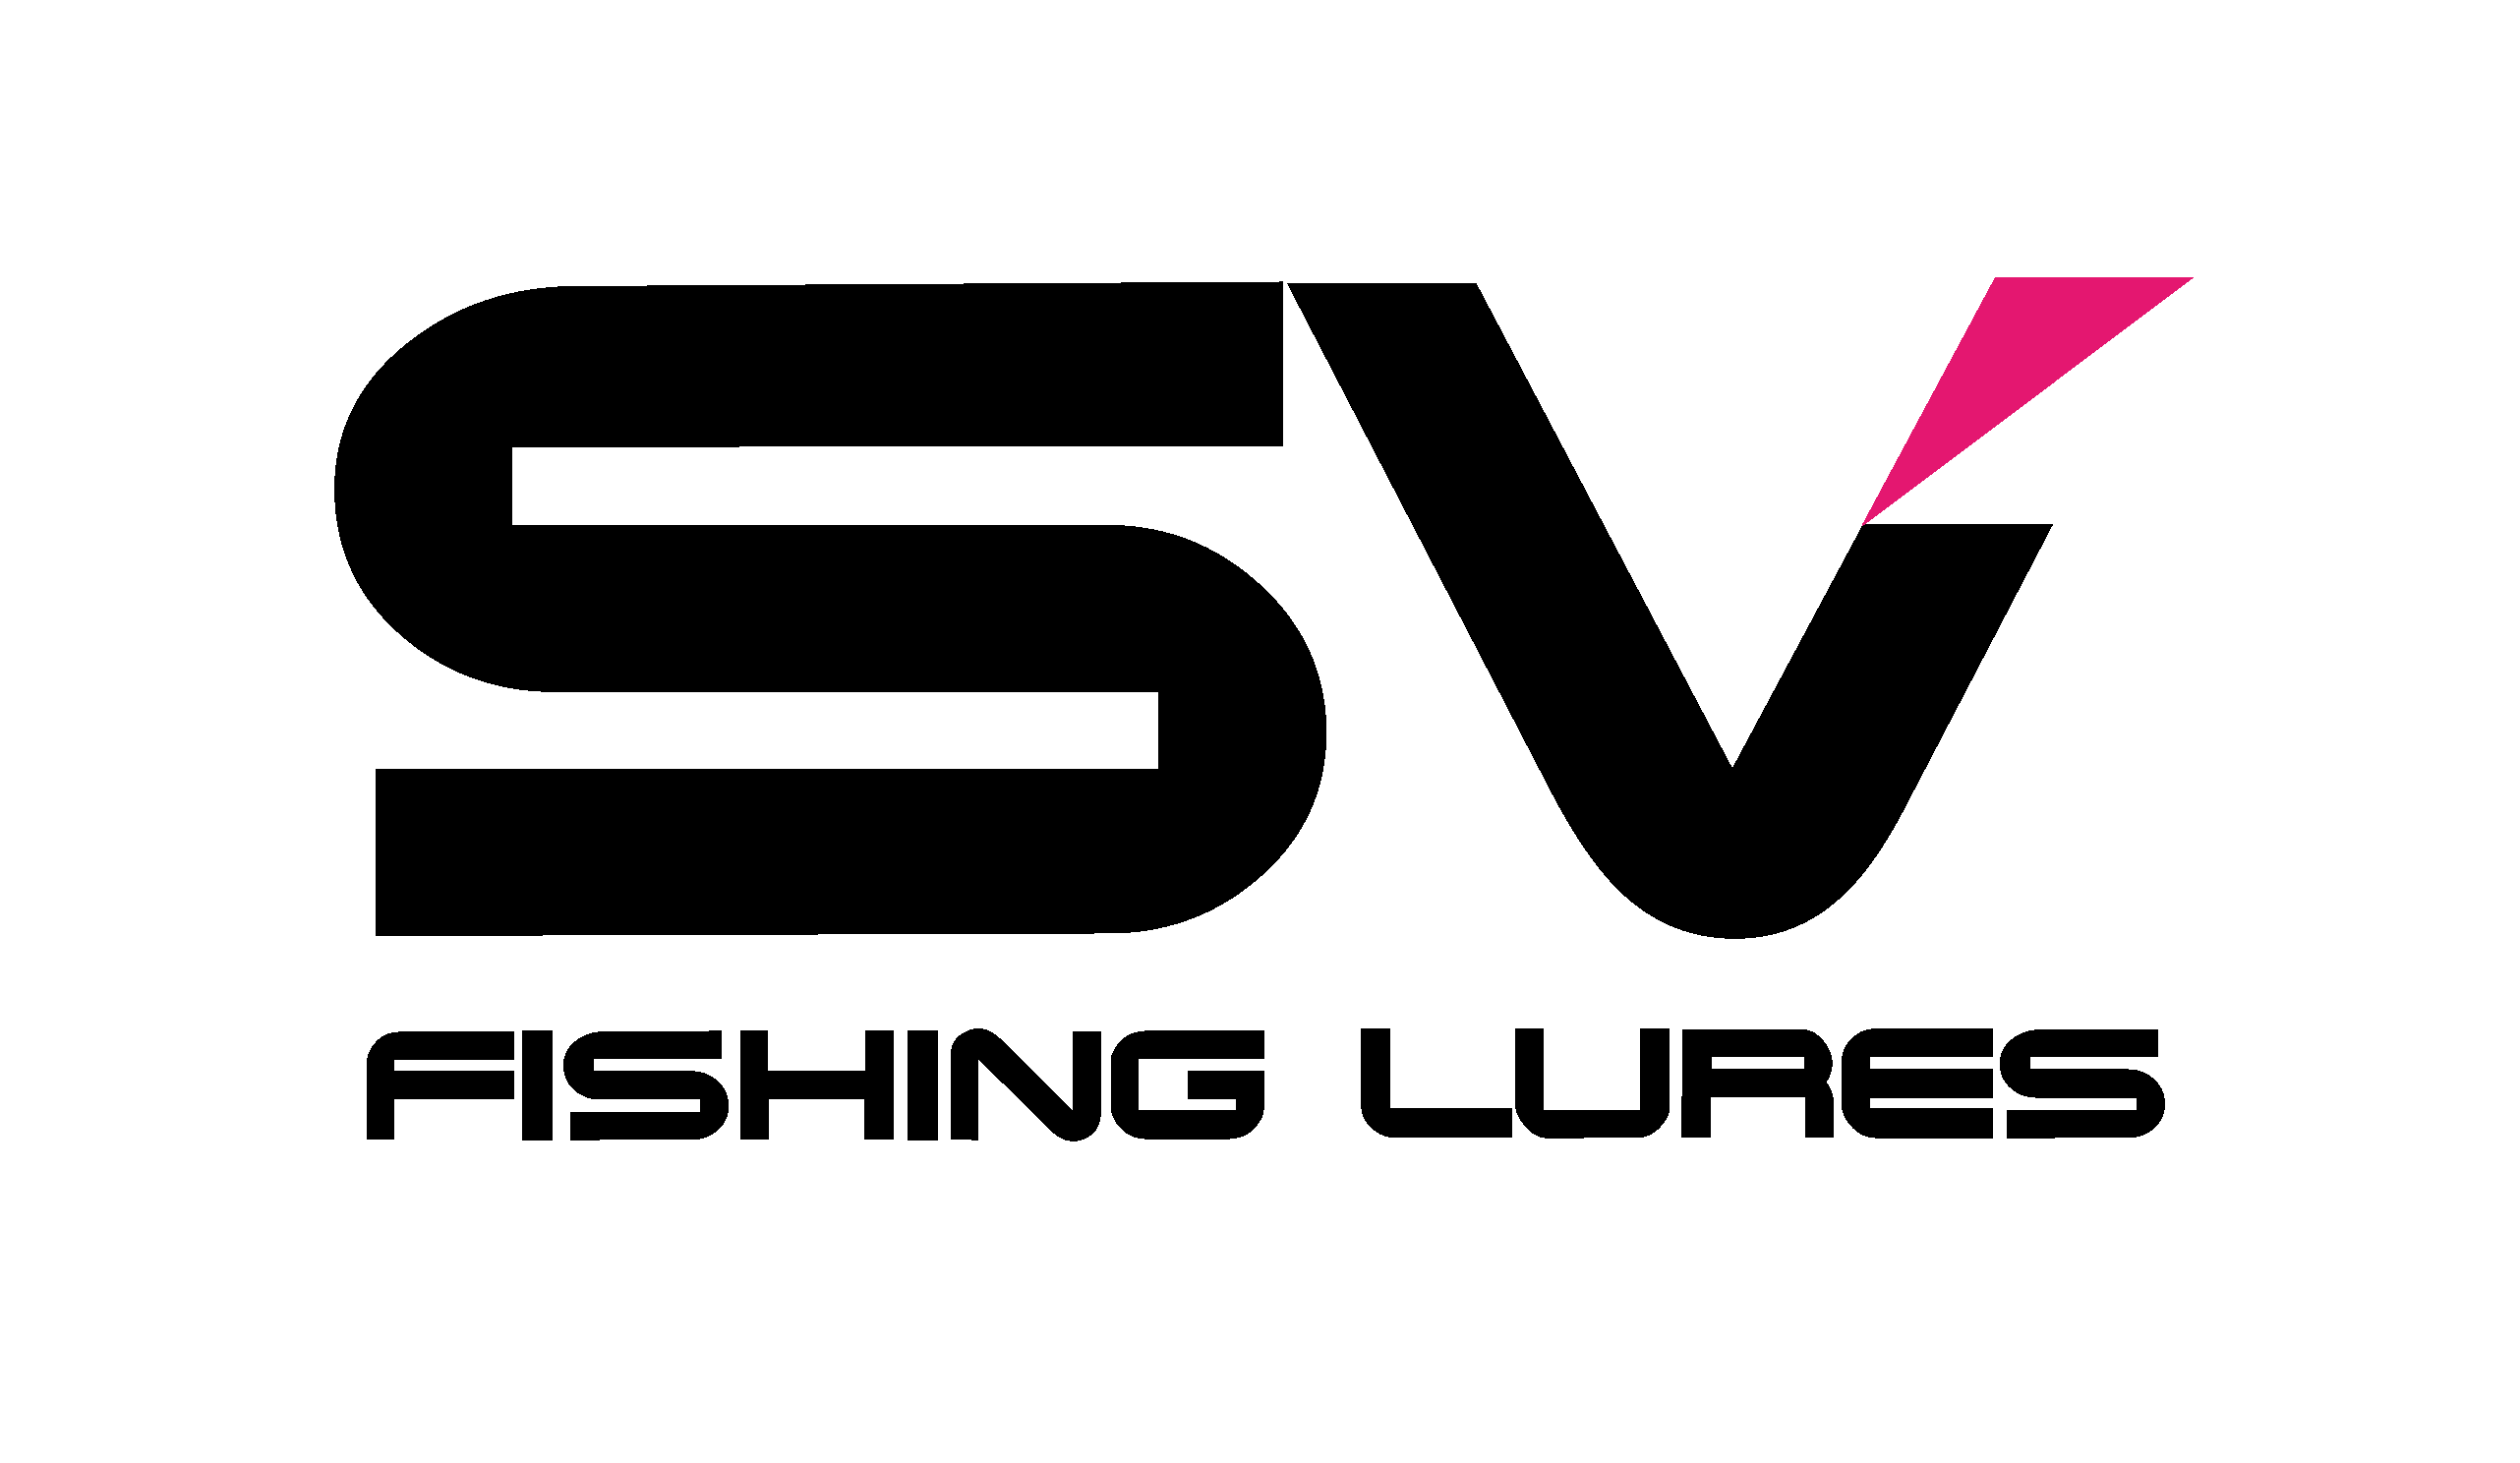 SV Fishing Lures